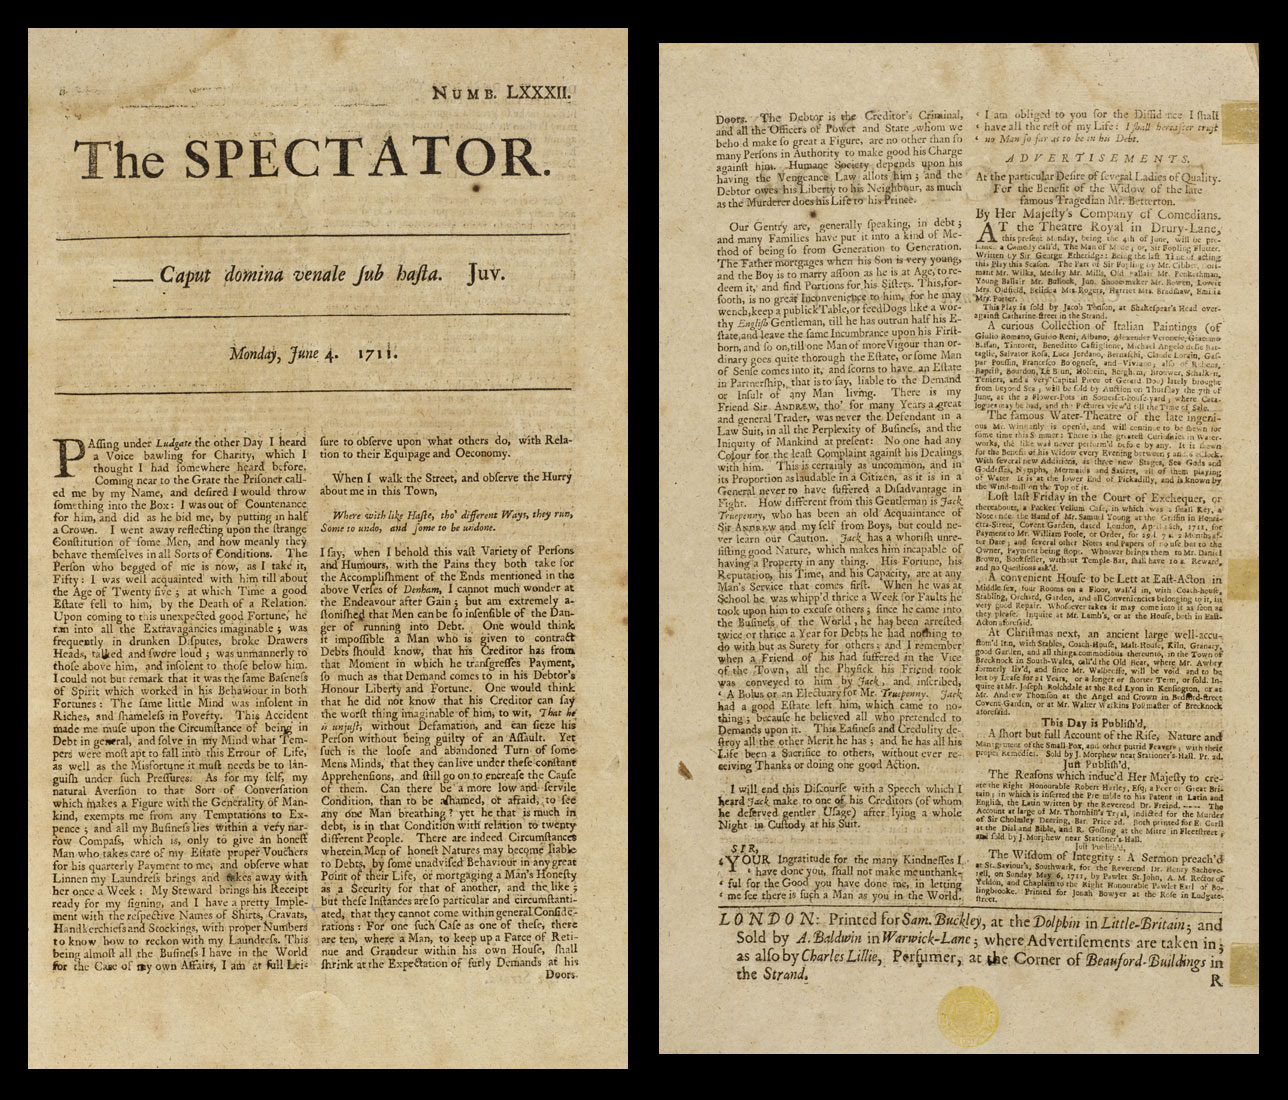 the spectator image